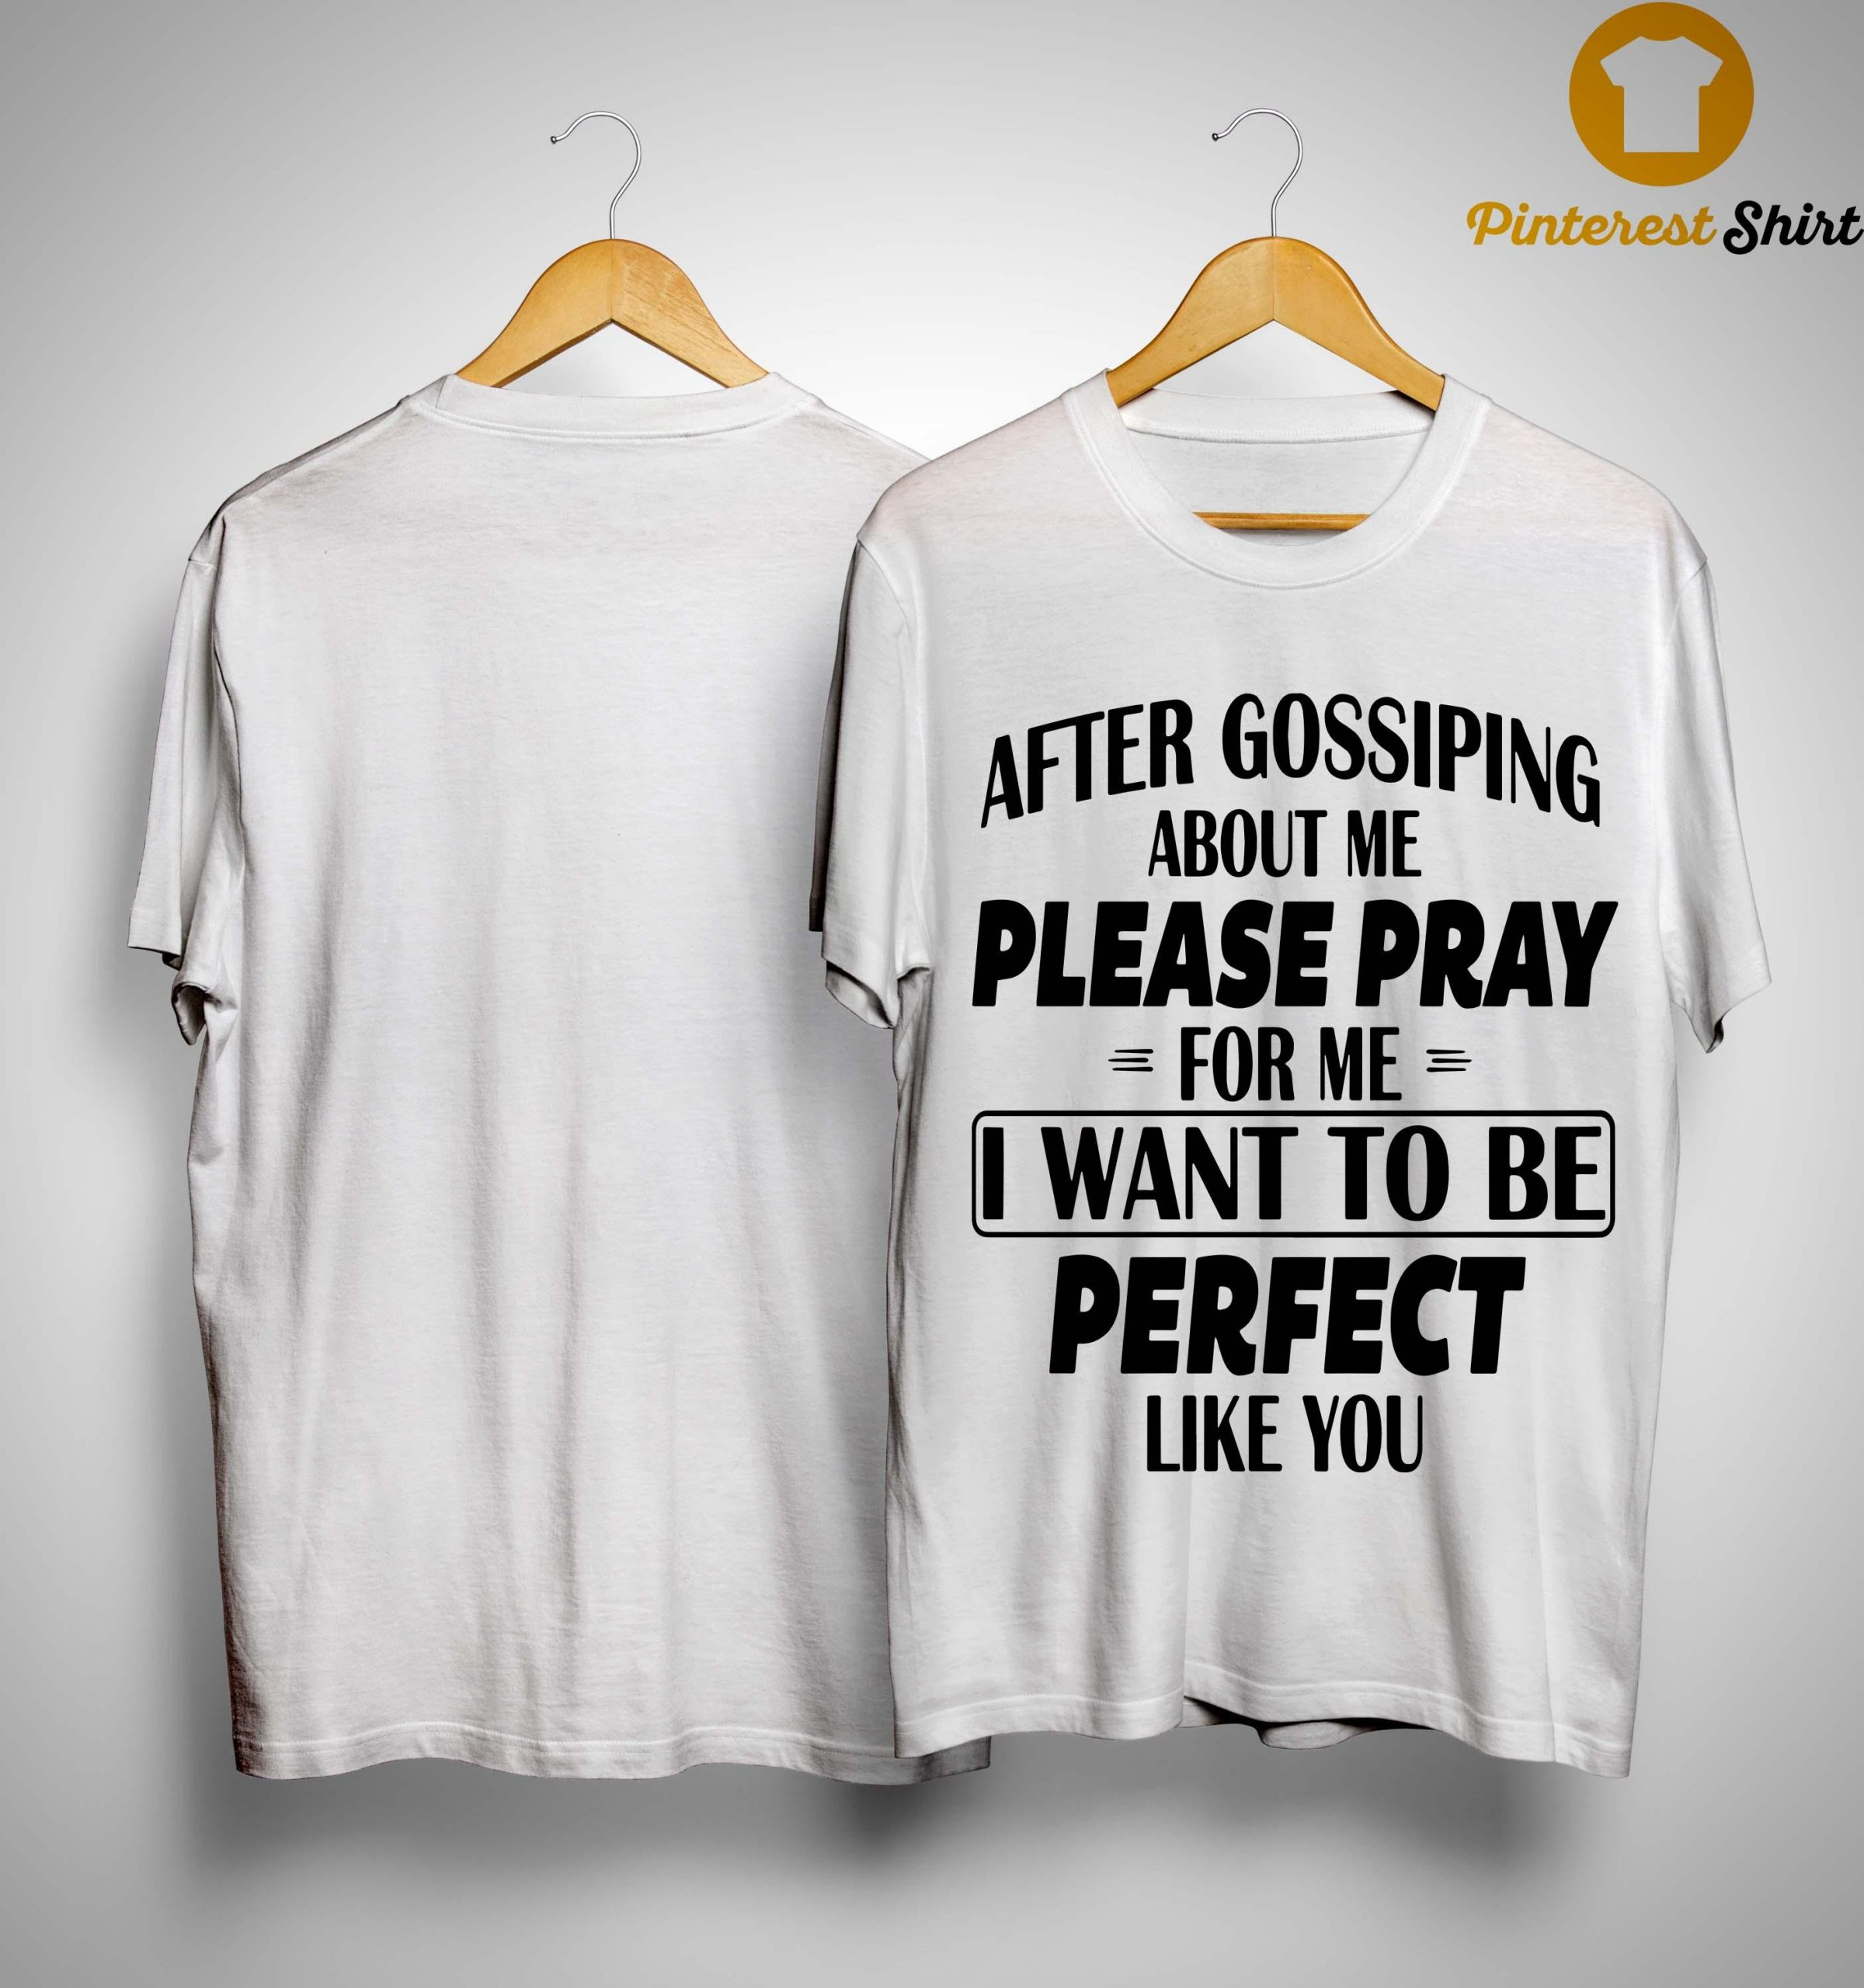 After Gossiping About Me Please Pray For Me Shirt